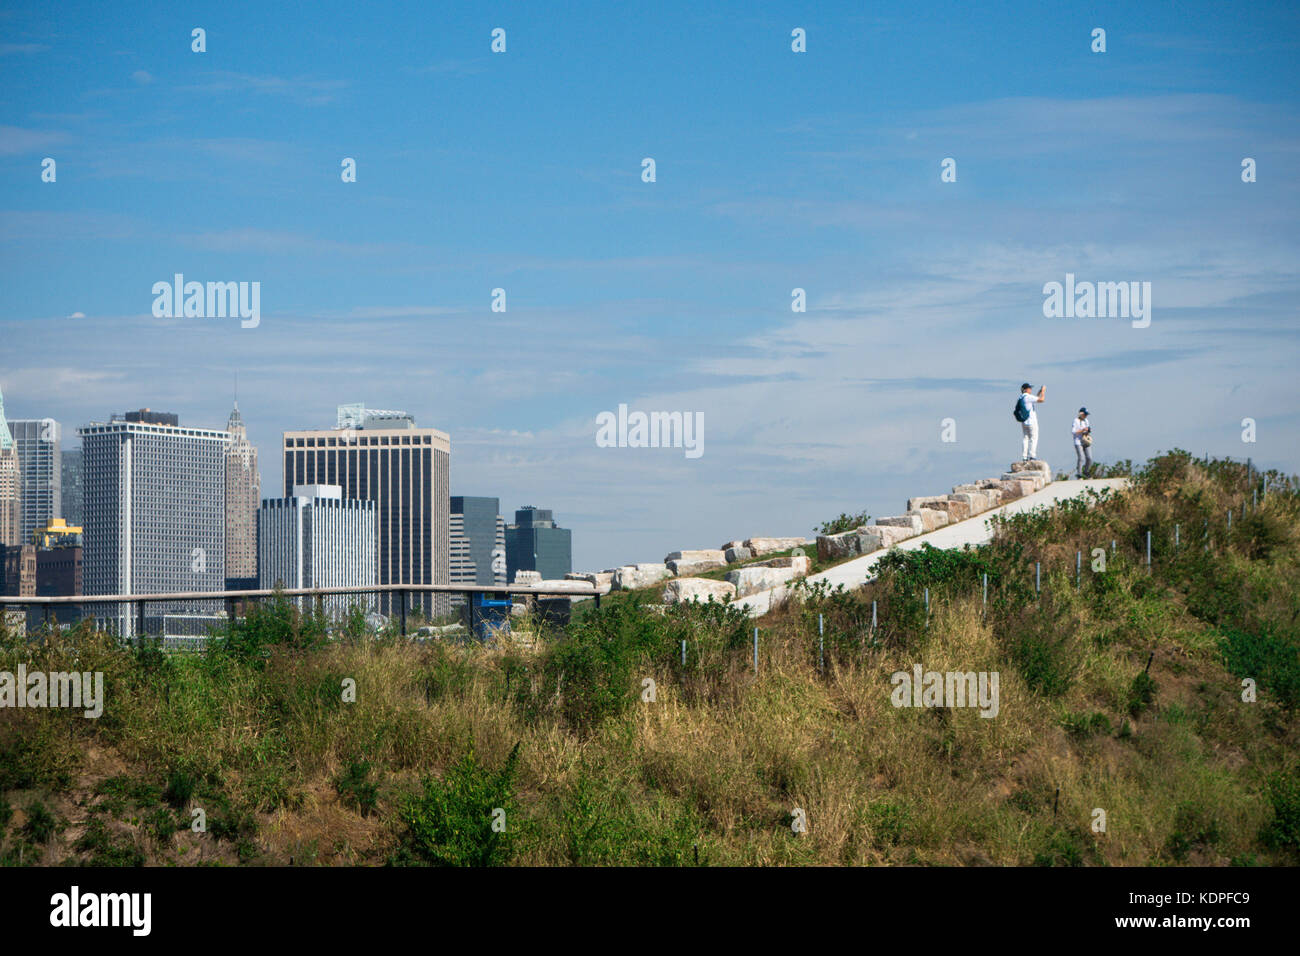 A view of the Manhattan (New York city) skyline from atop 'The Hills' on Governors Island. - Stock Image